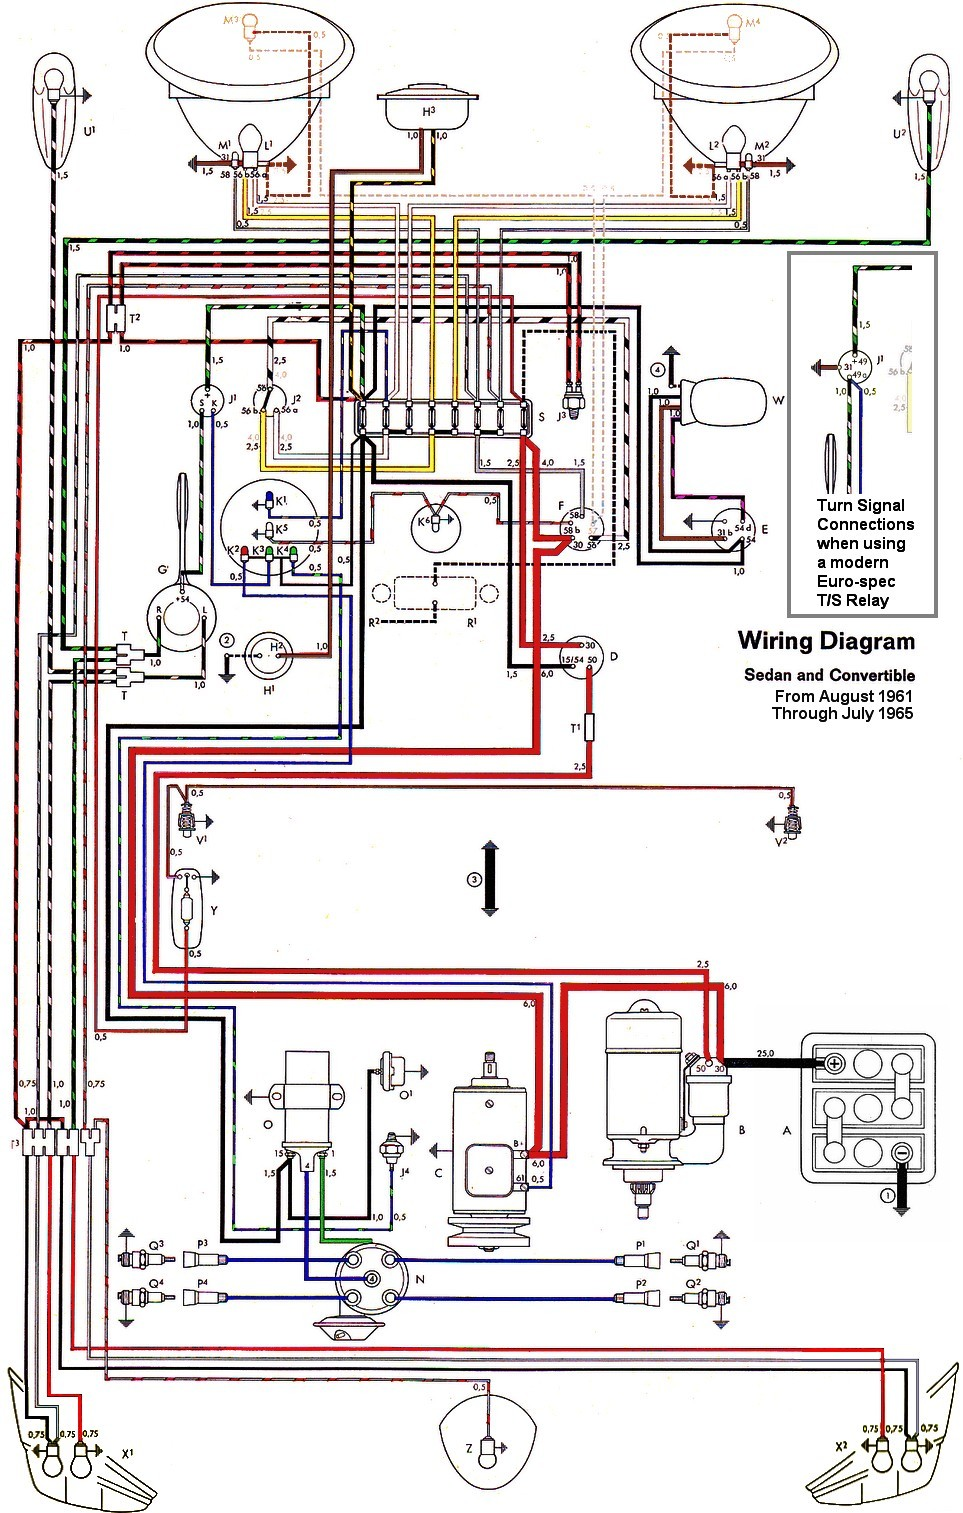 hight resolution of thesamba com type 1 wiring diagrams 1970 vw bus wiring diagram 1970 vw wiring diagram